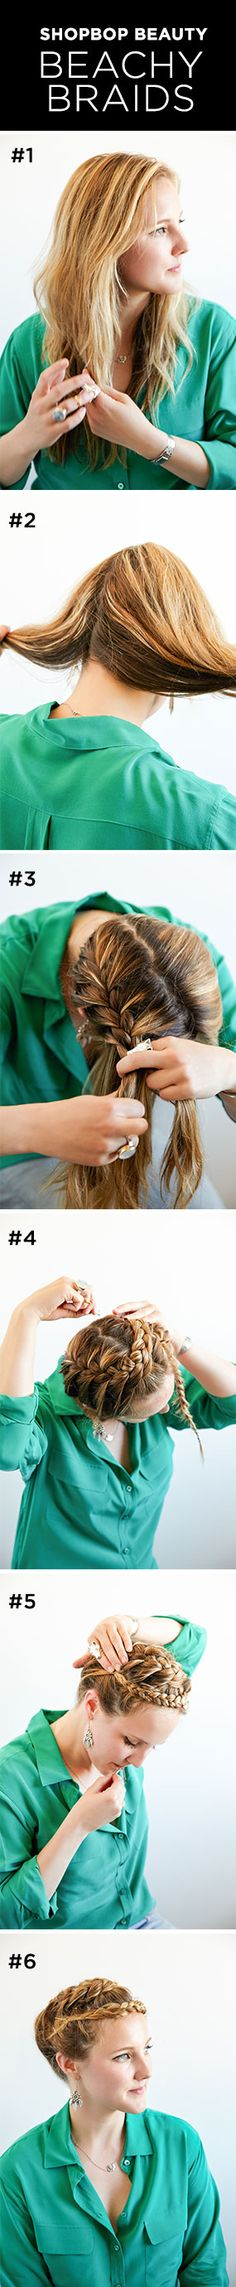 Shopbop Beauty | Beachy Braids  We turned to our resident braiding expert for a step-by-step guide to the perfect beachy braids.   See her how-to on Shoptalk> http://blog.shopbop.com/shopbop-beauty-beachy-braids?all=SN_pin_130624